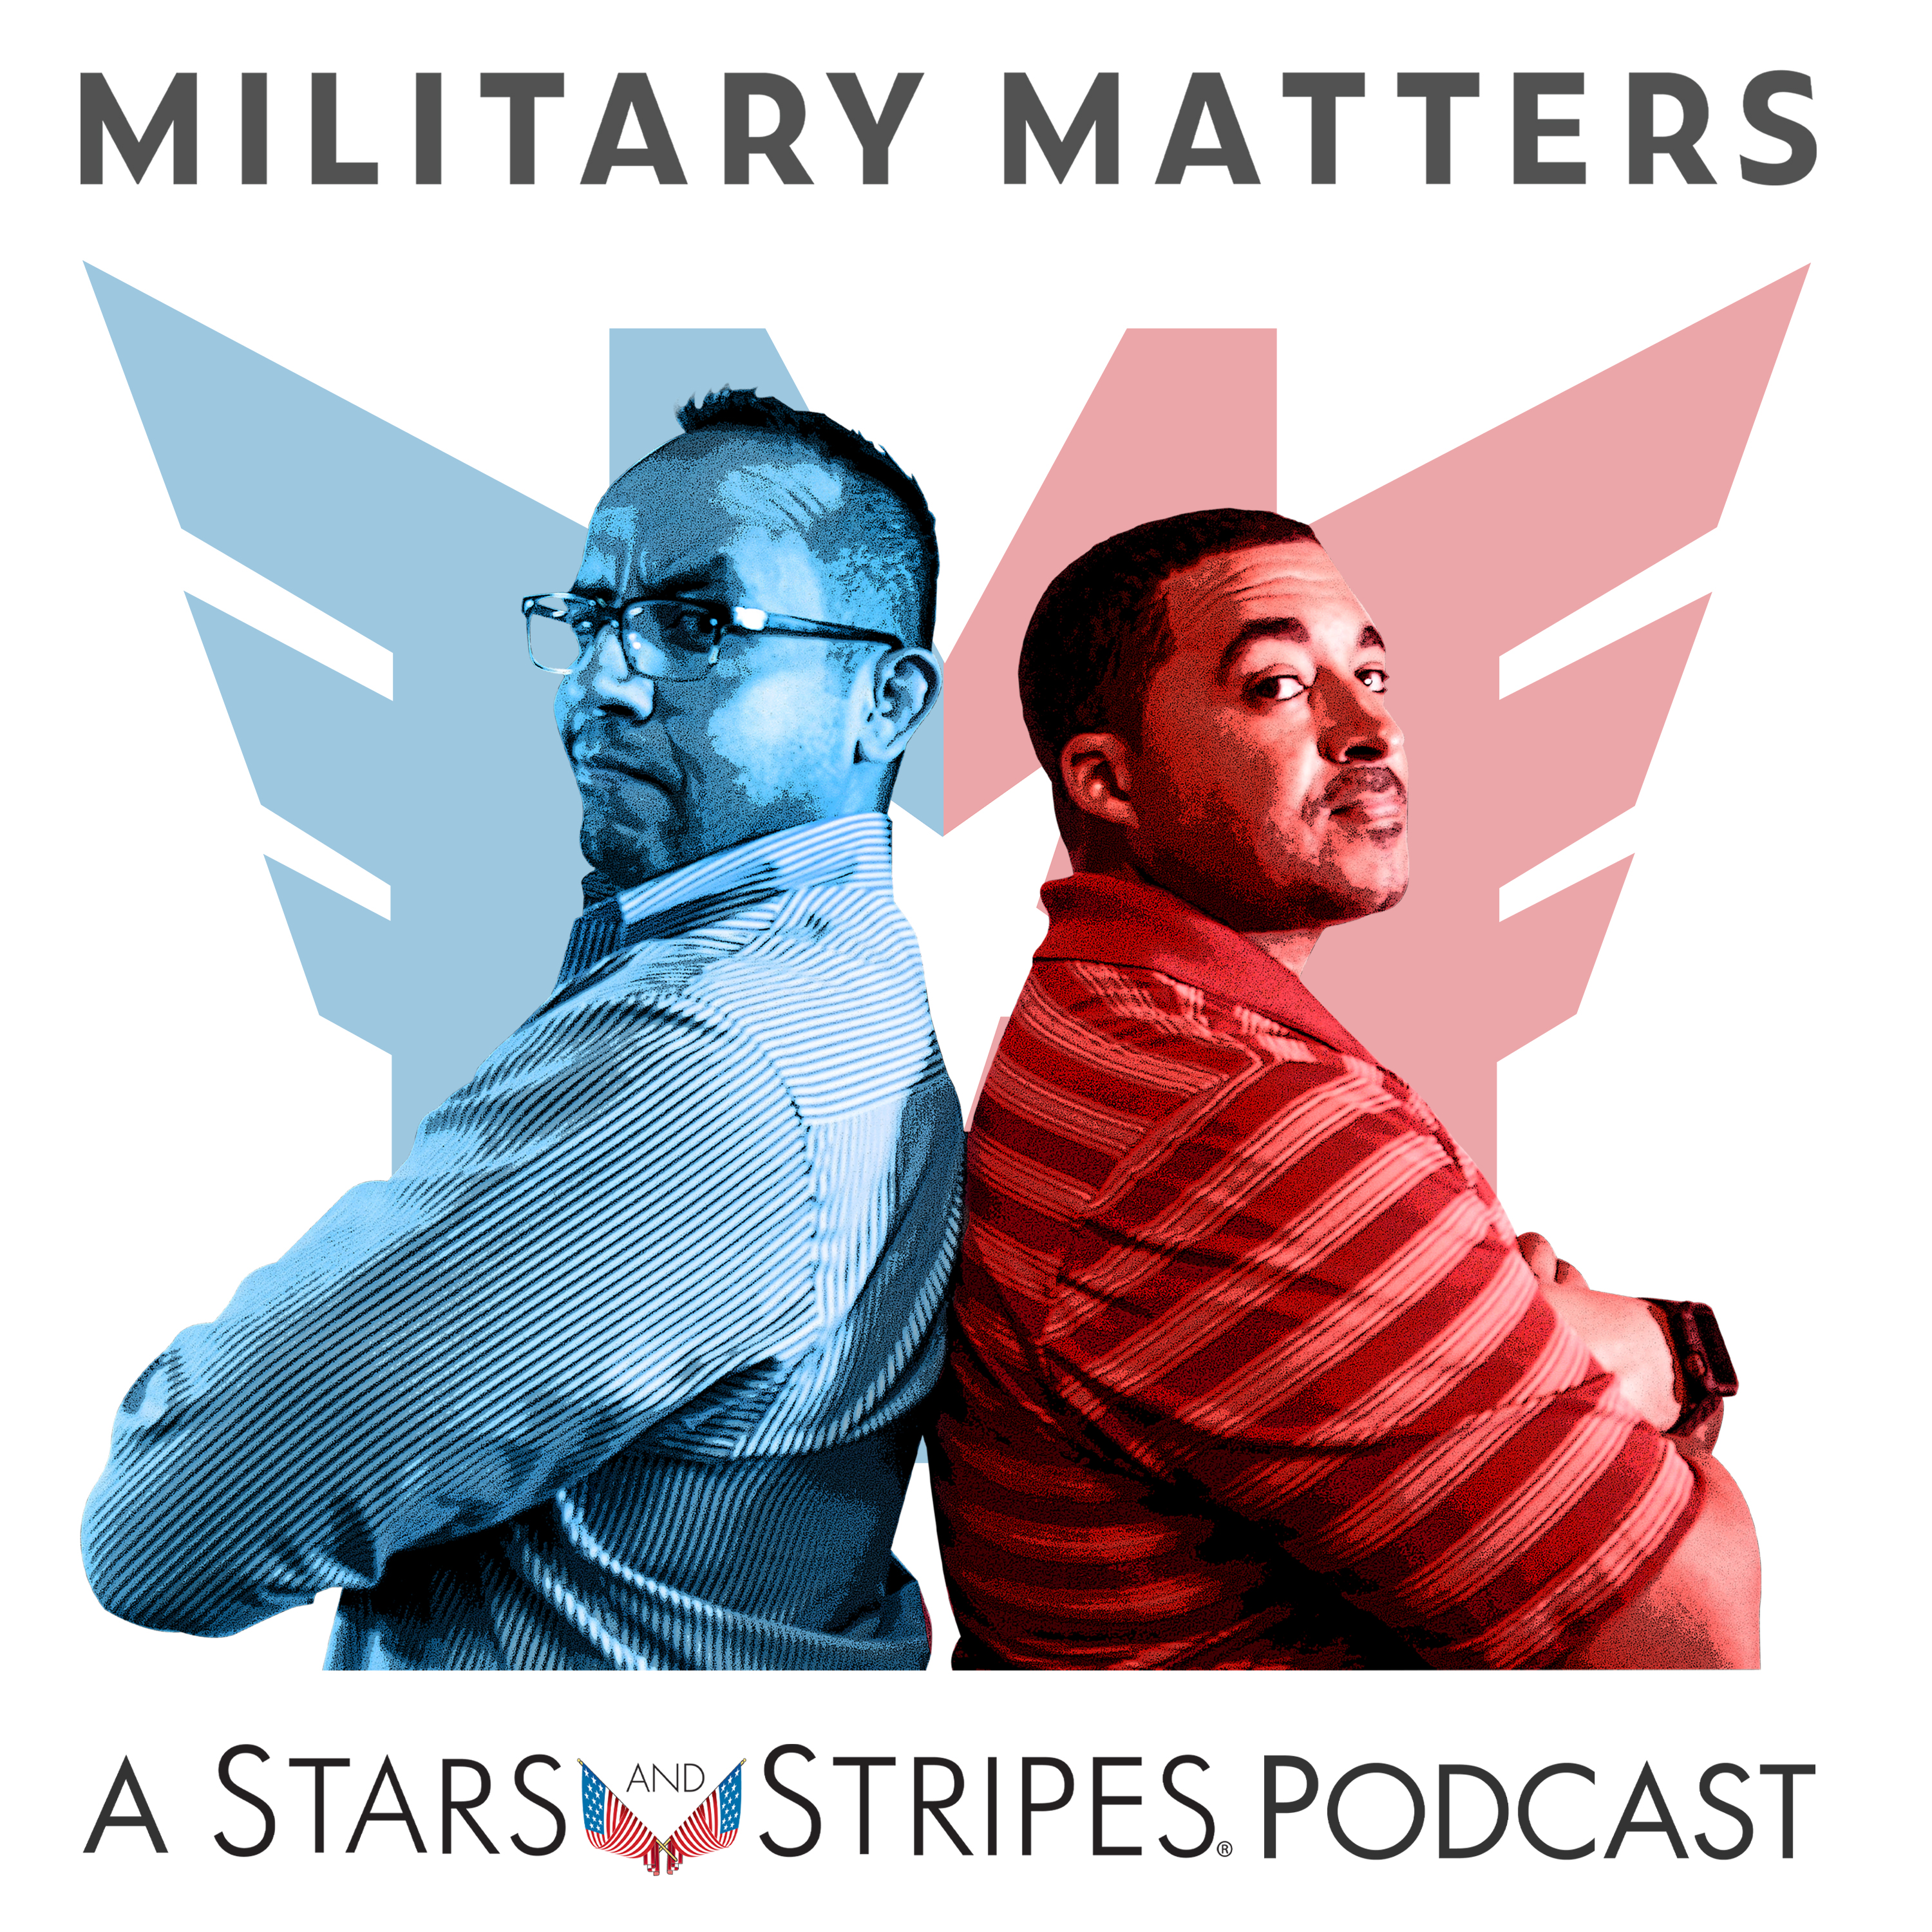 Military Matters Podcast show art